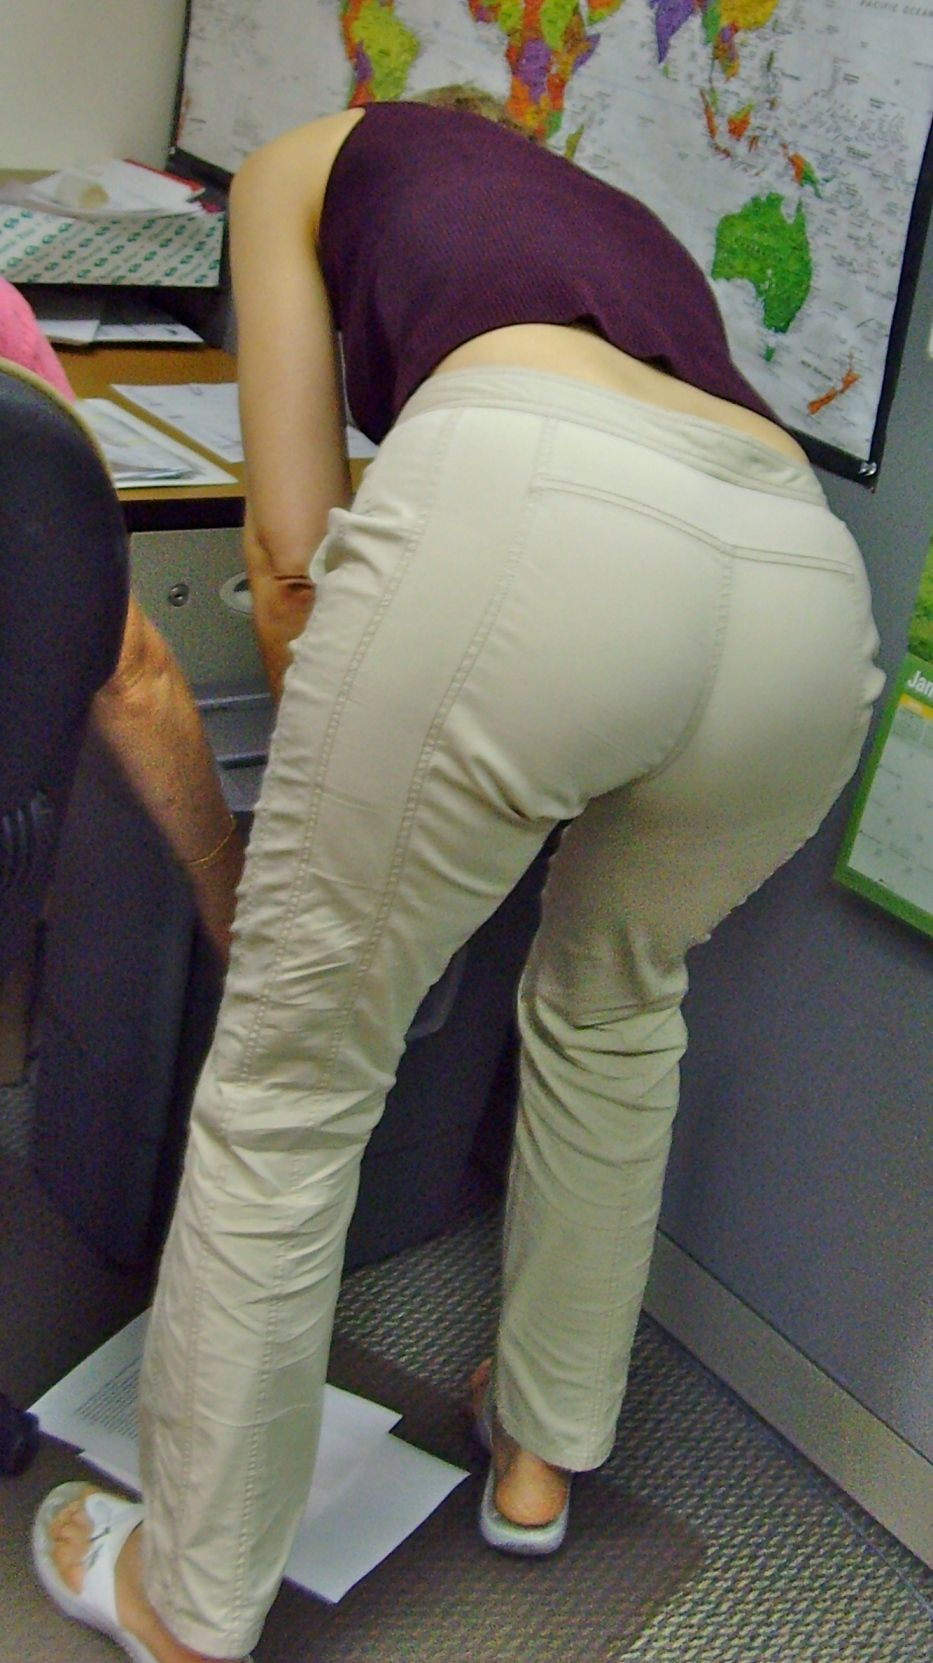 Mature women in tight pants